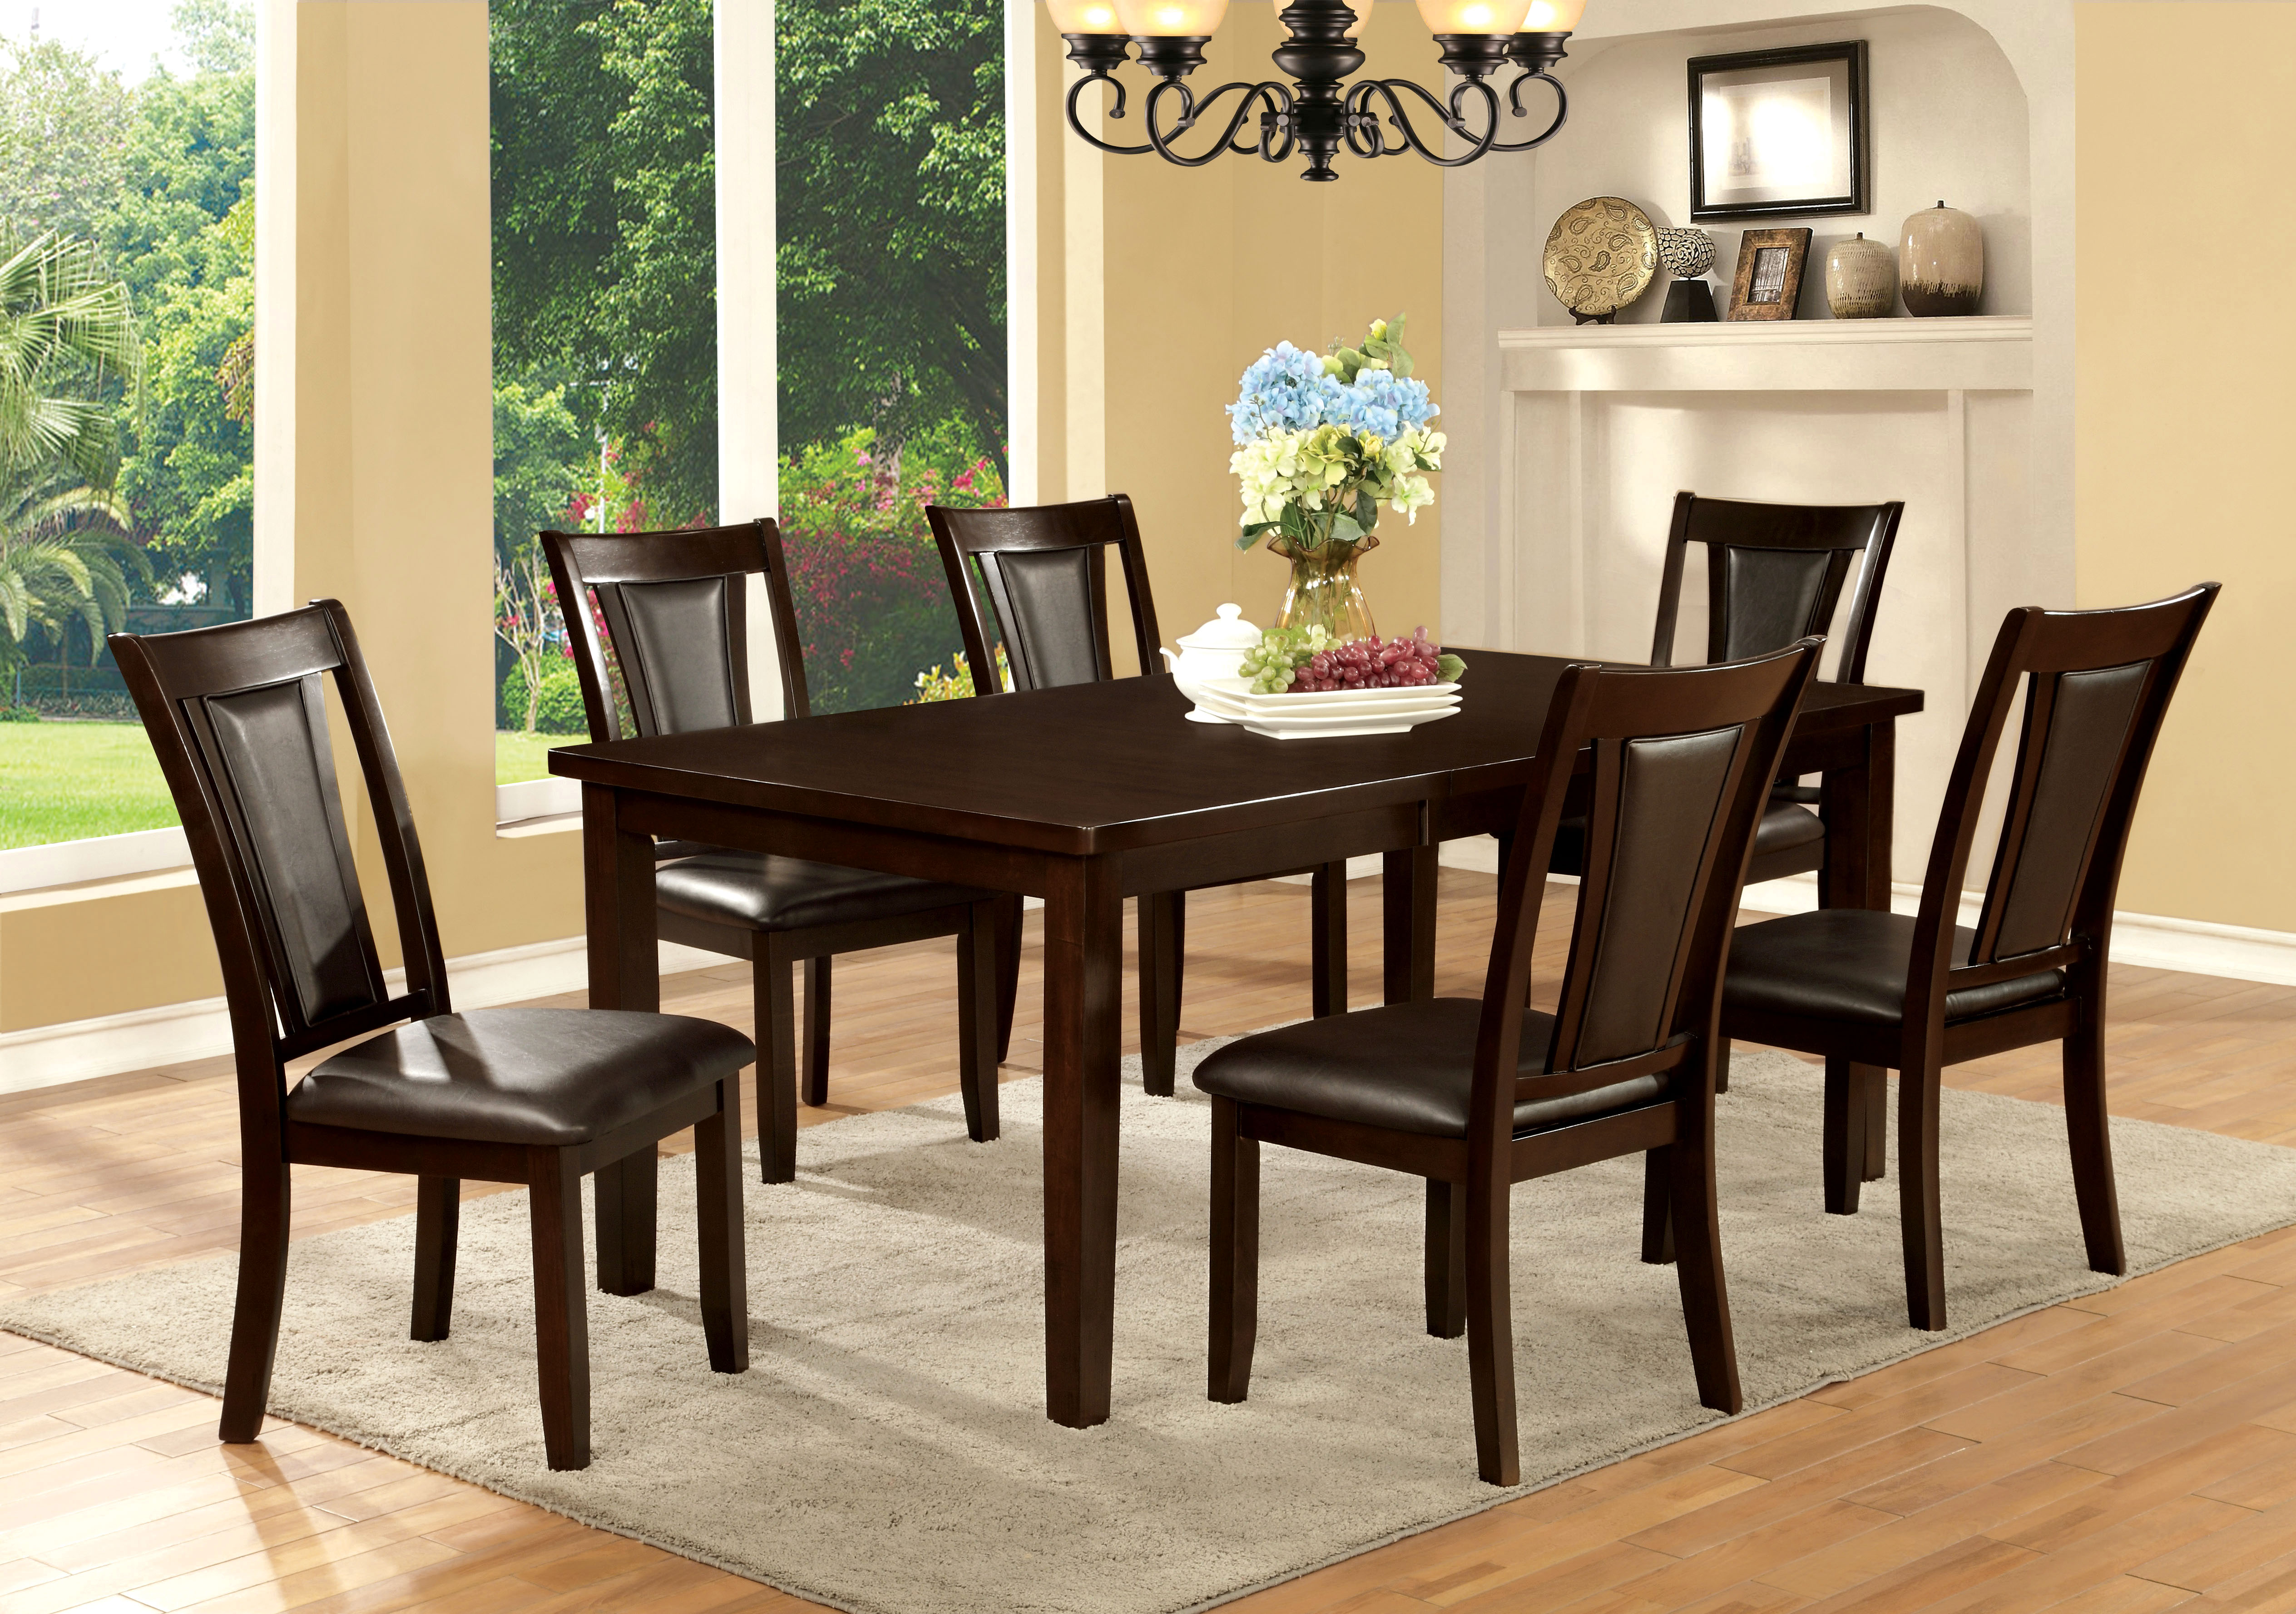 Furniture of America Dark Cherry Bordeaux Dining Table